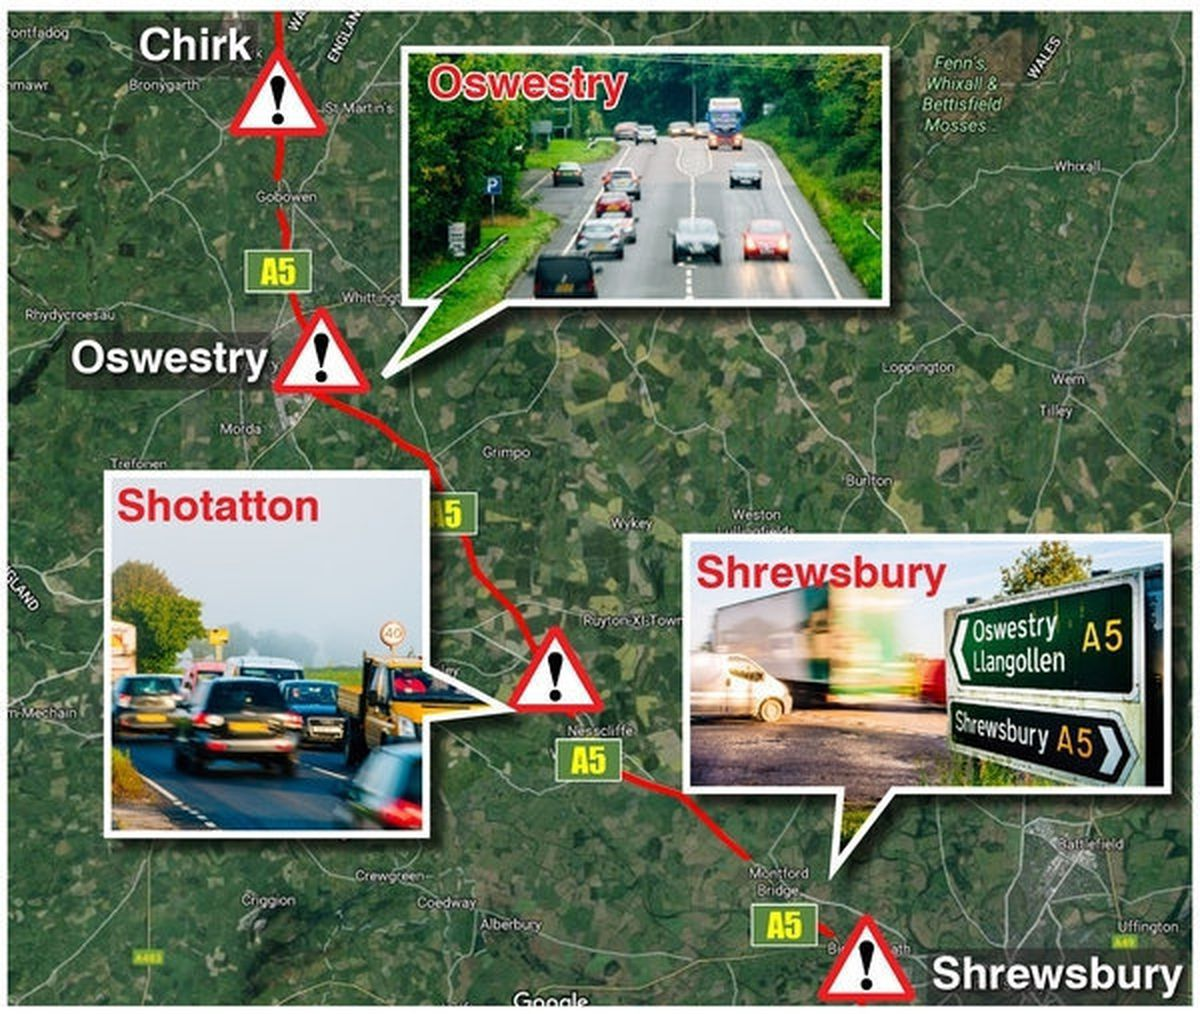 The A5 in Shropshire